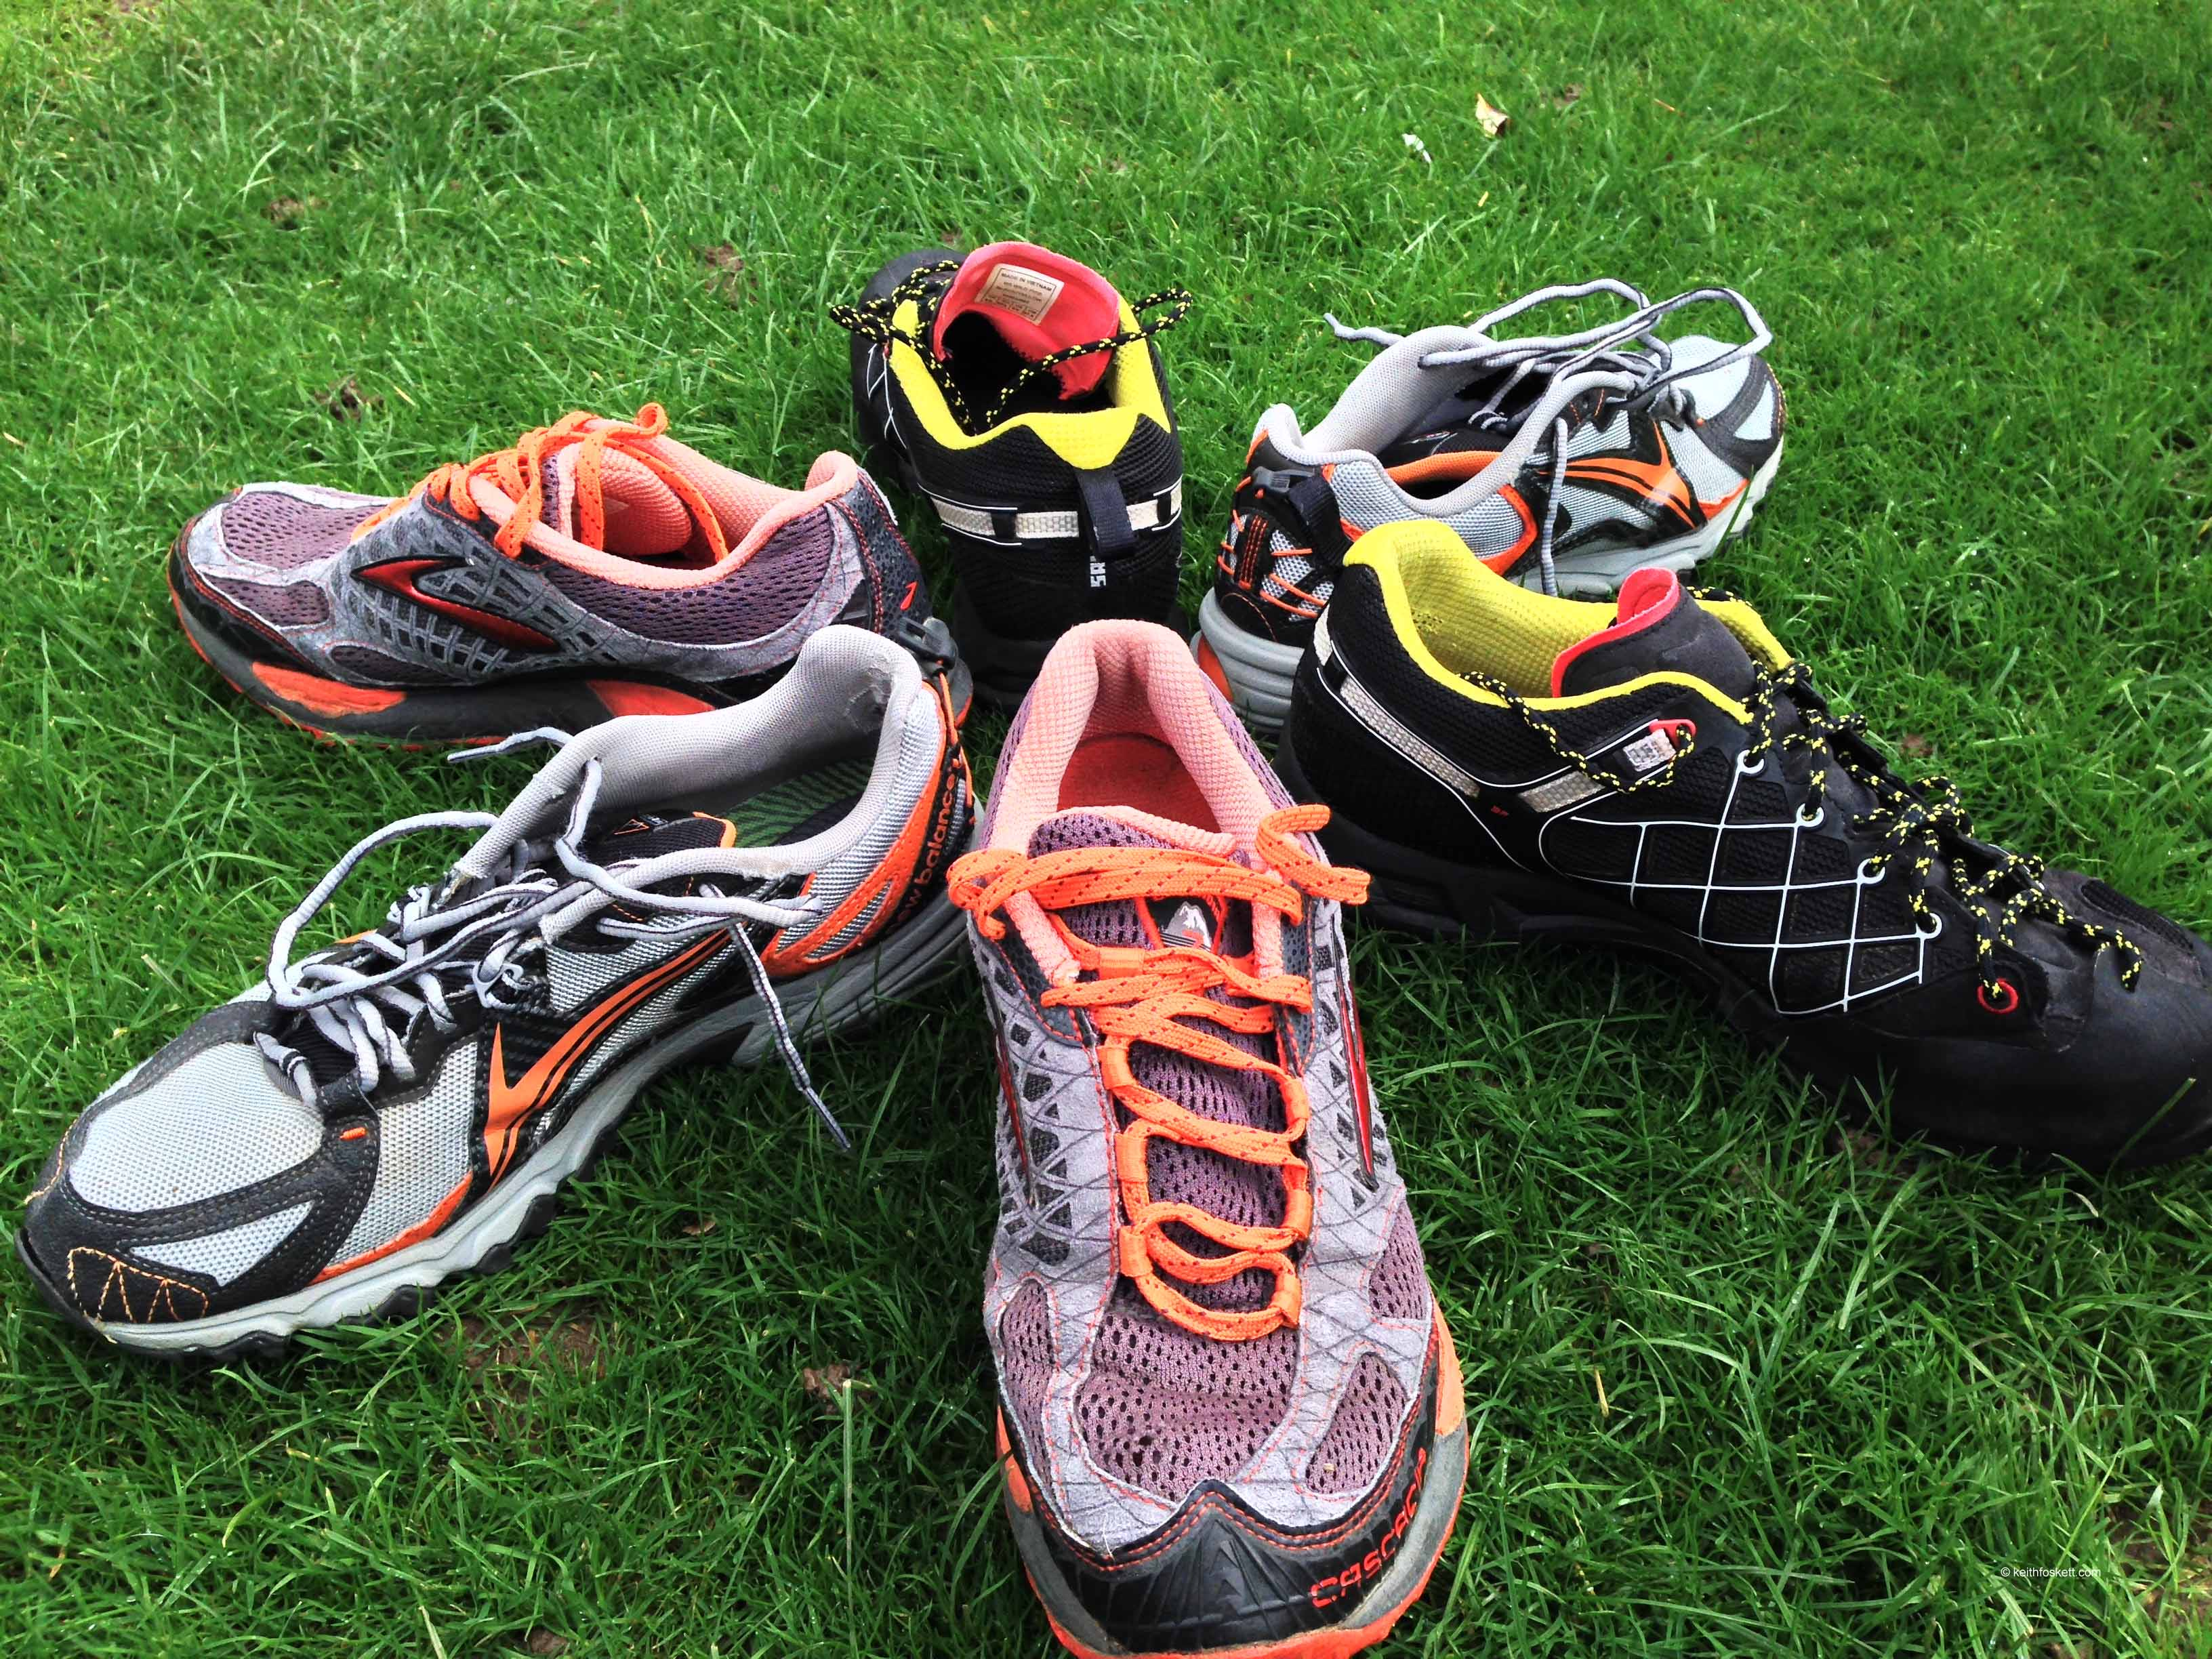 Three Shoe Review by Keith Foskett